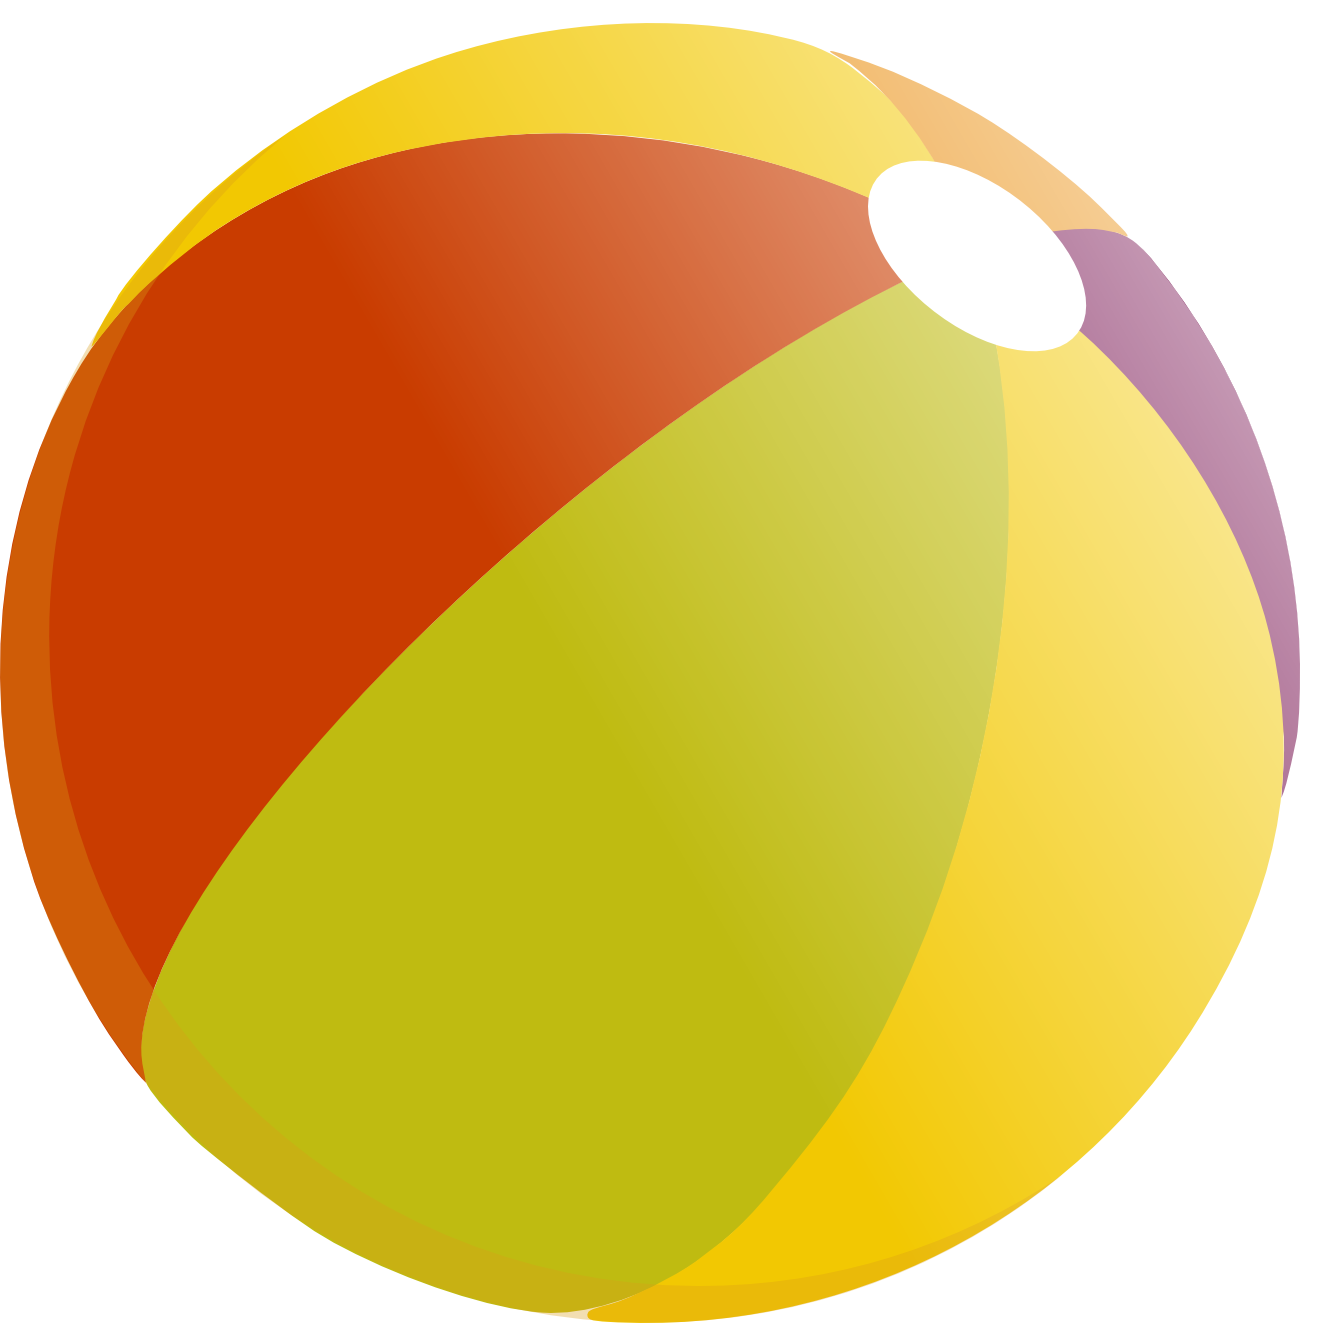 1331x1323 Free Beach Ball Clipart Free Clip Art Images Image 4 8